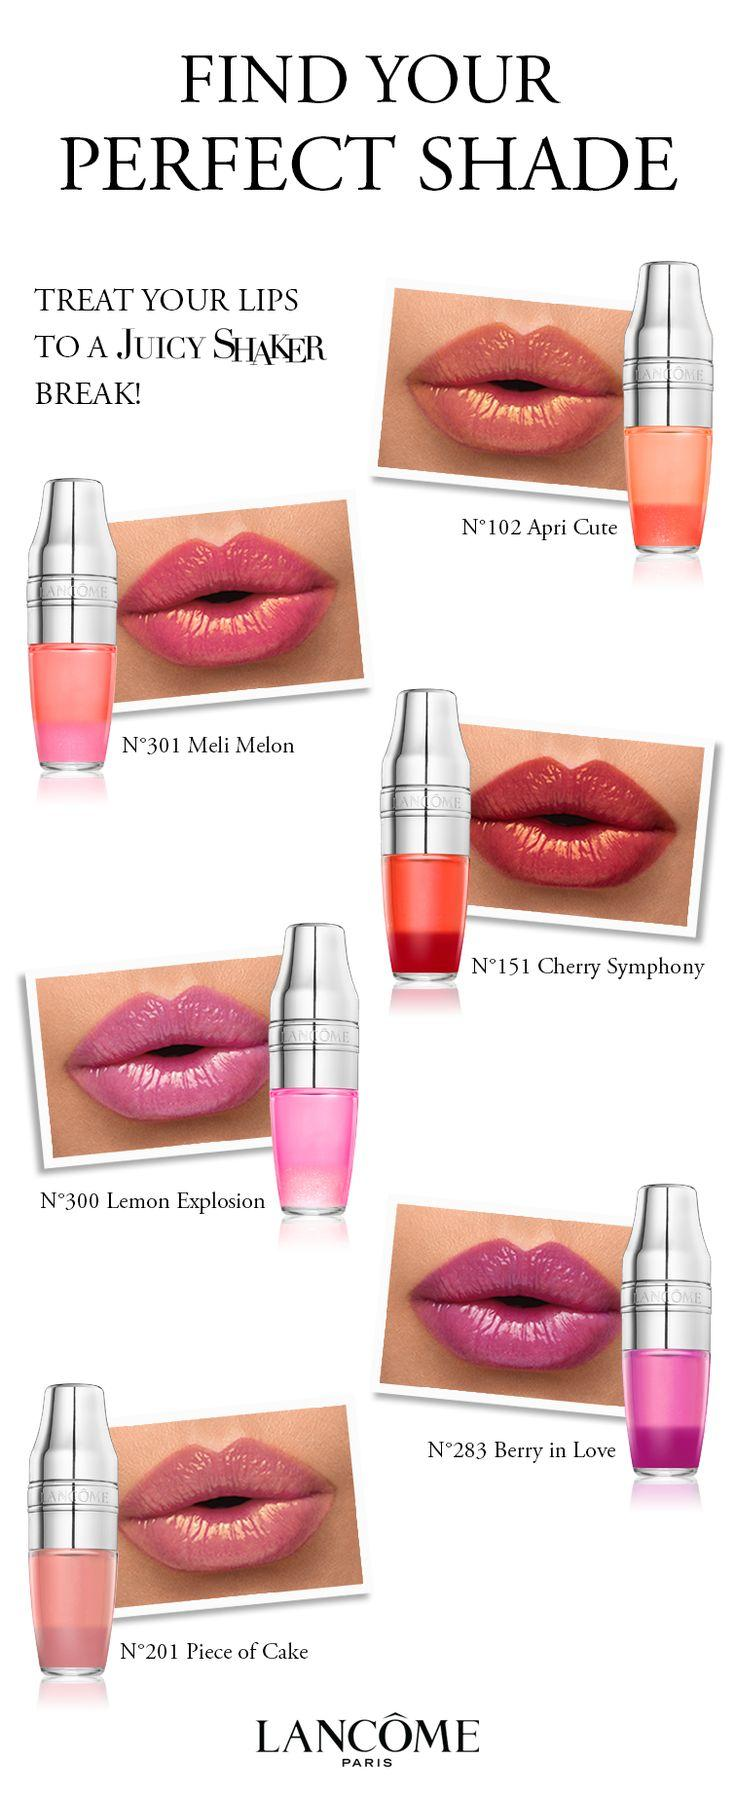 Mariage - Juicy Shaker Lip Oil #BANTHEBORING